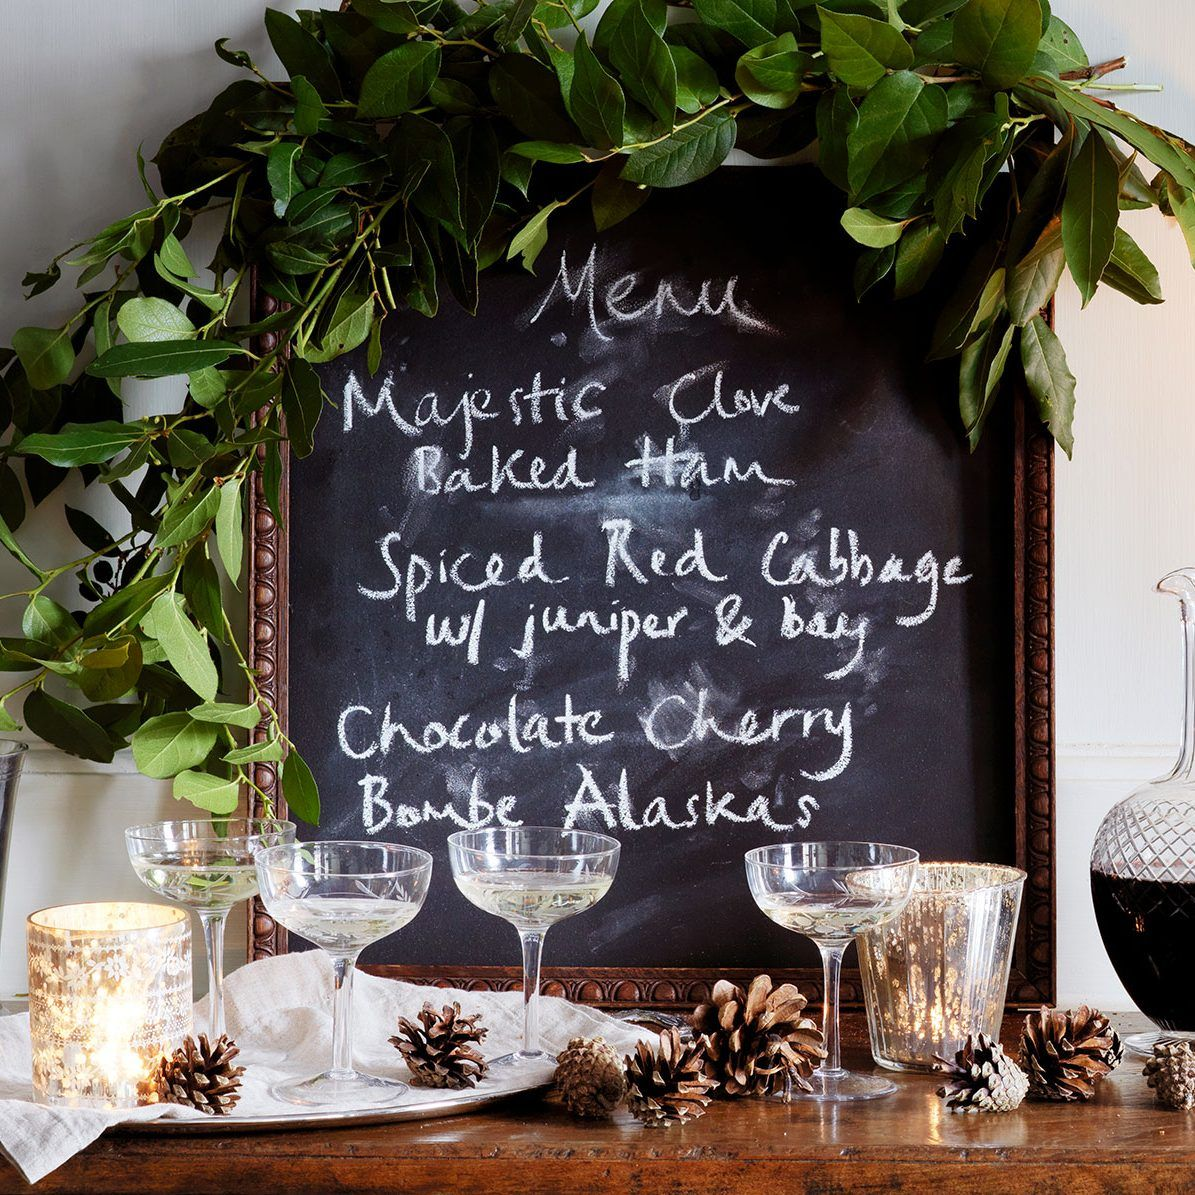 Christmas party recipes to entertain your friends and family